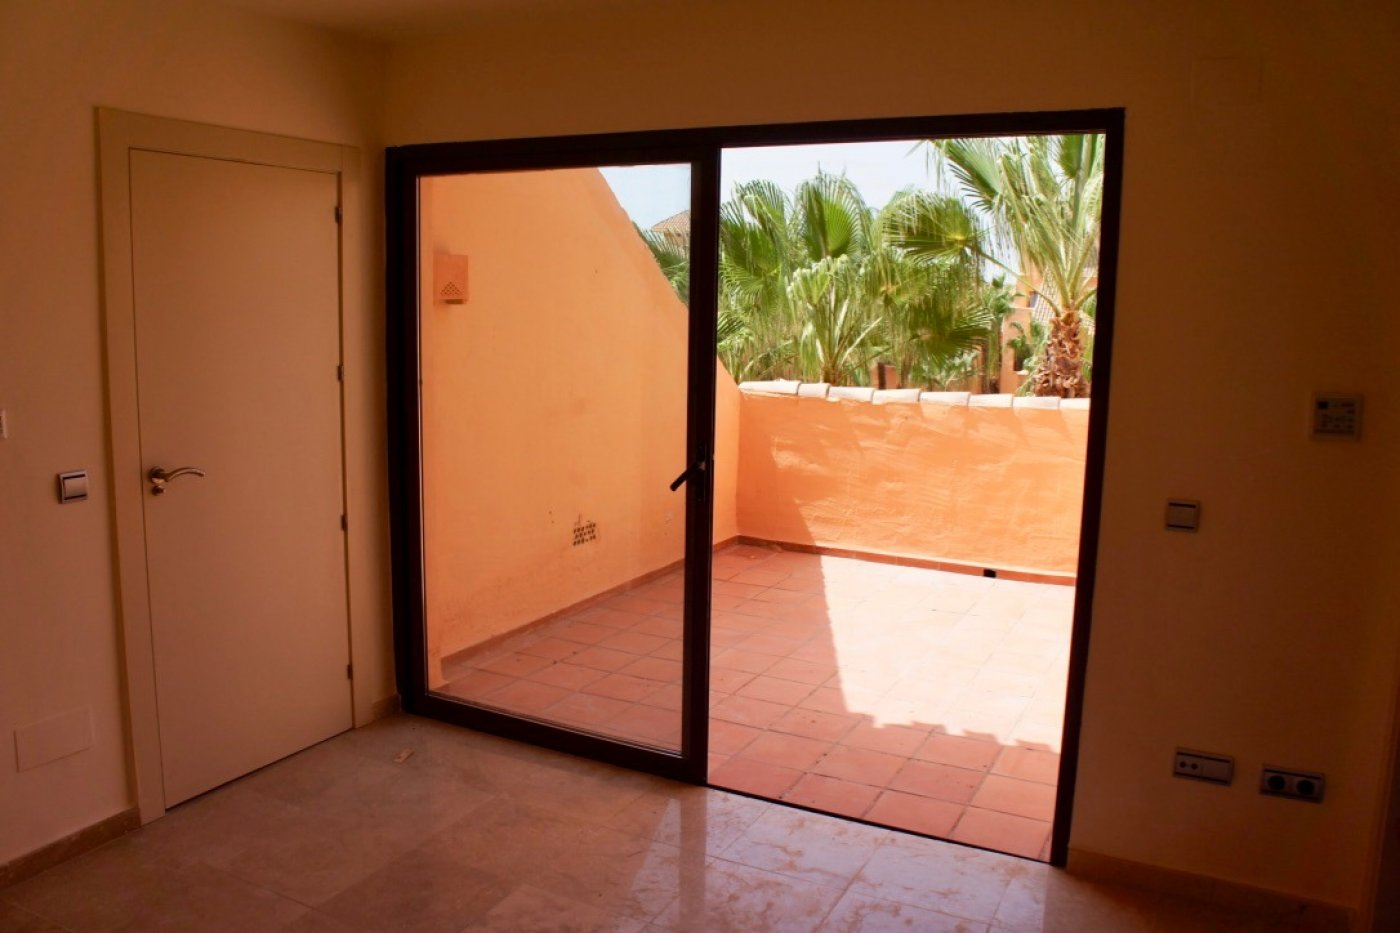 Gallery Image 18 of Amazing opportunity, duplex flat close to beach never lived in